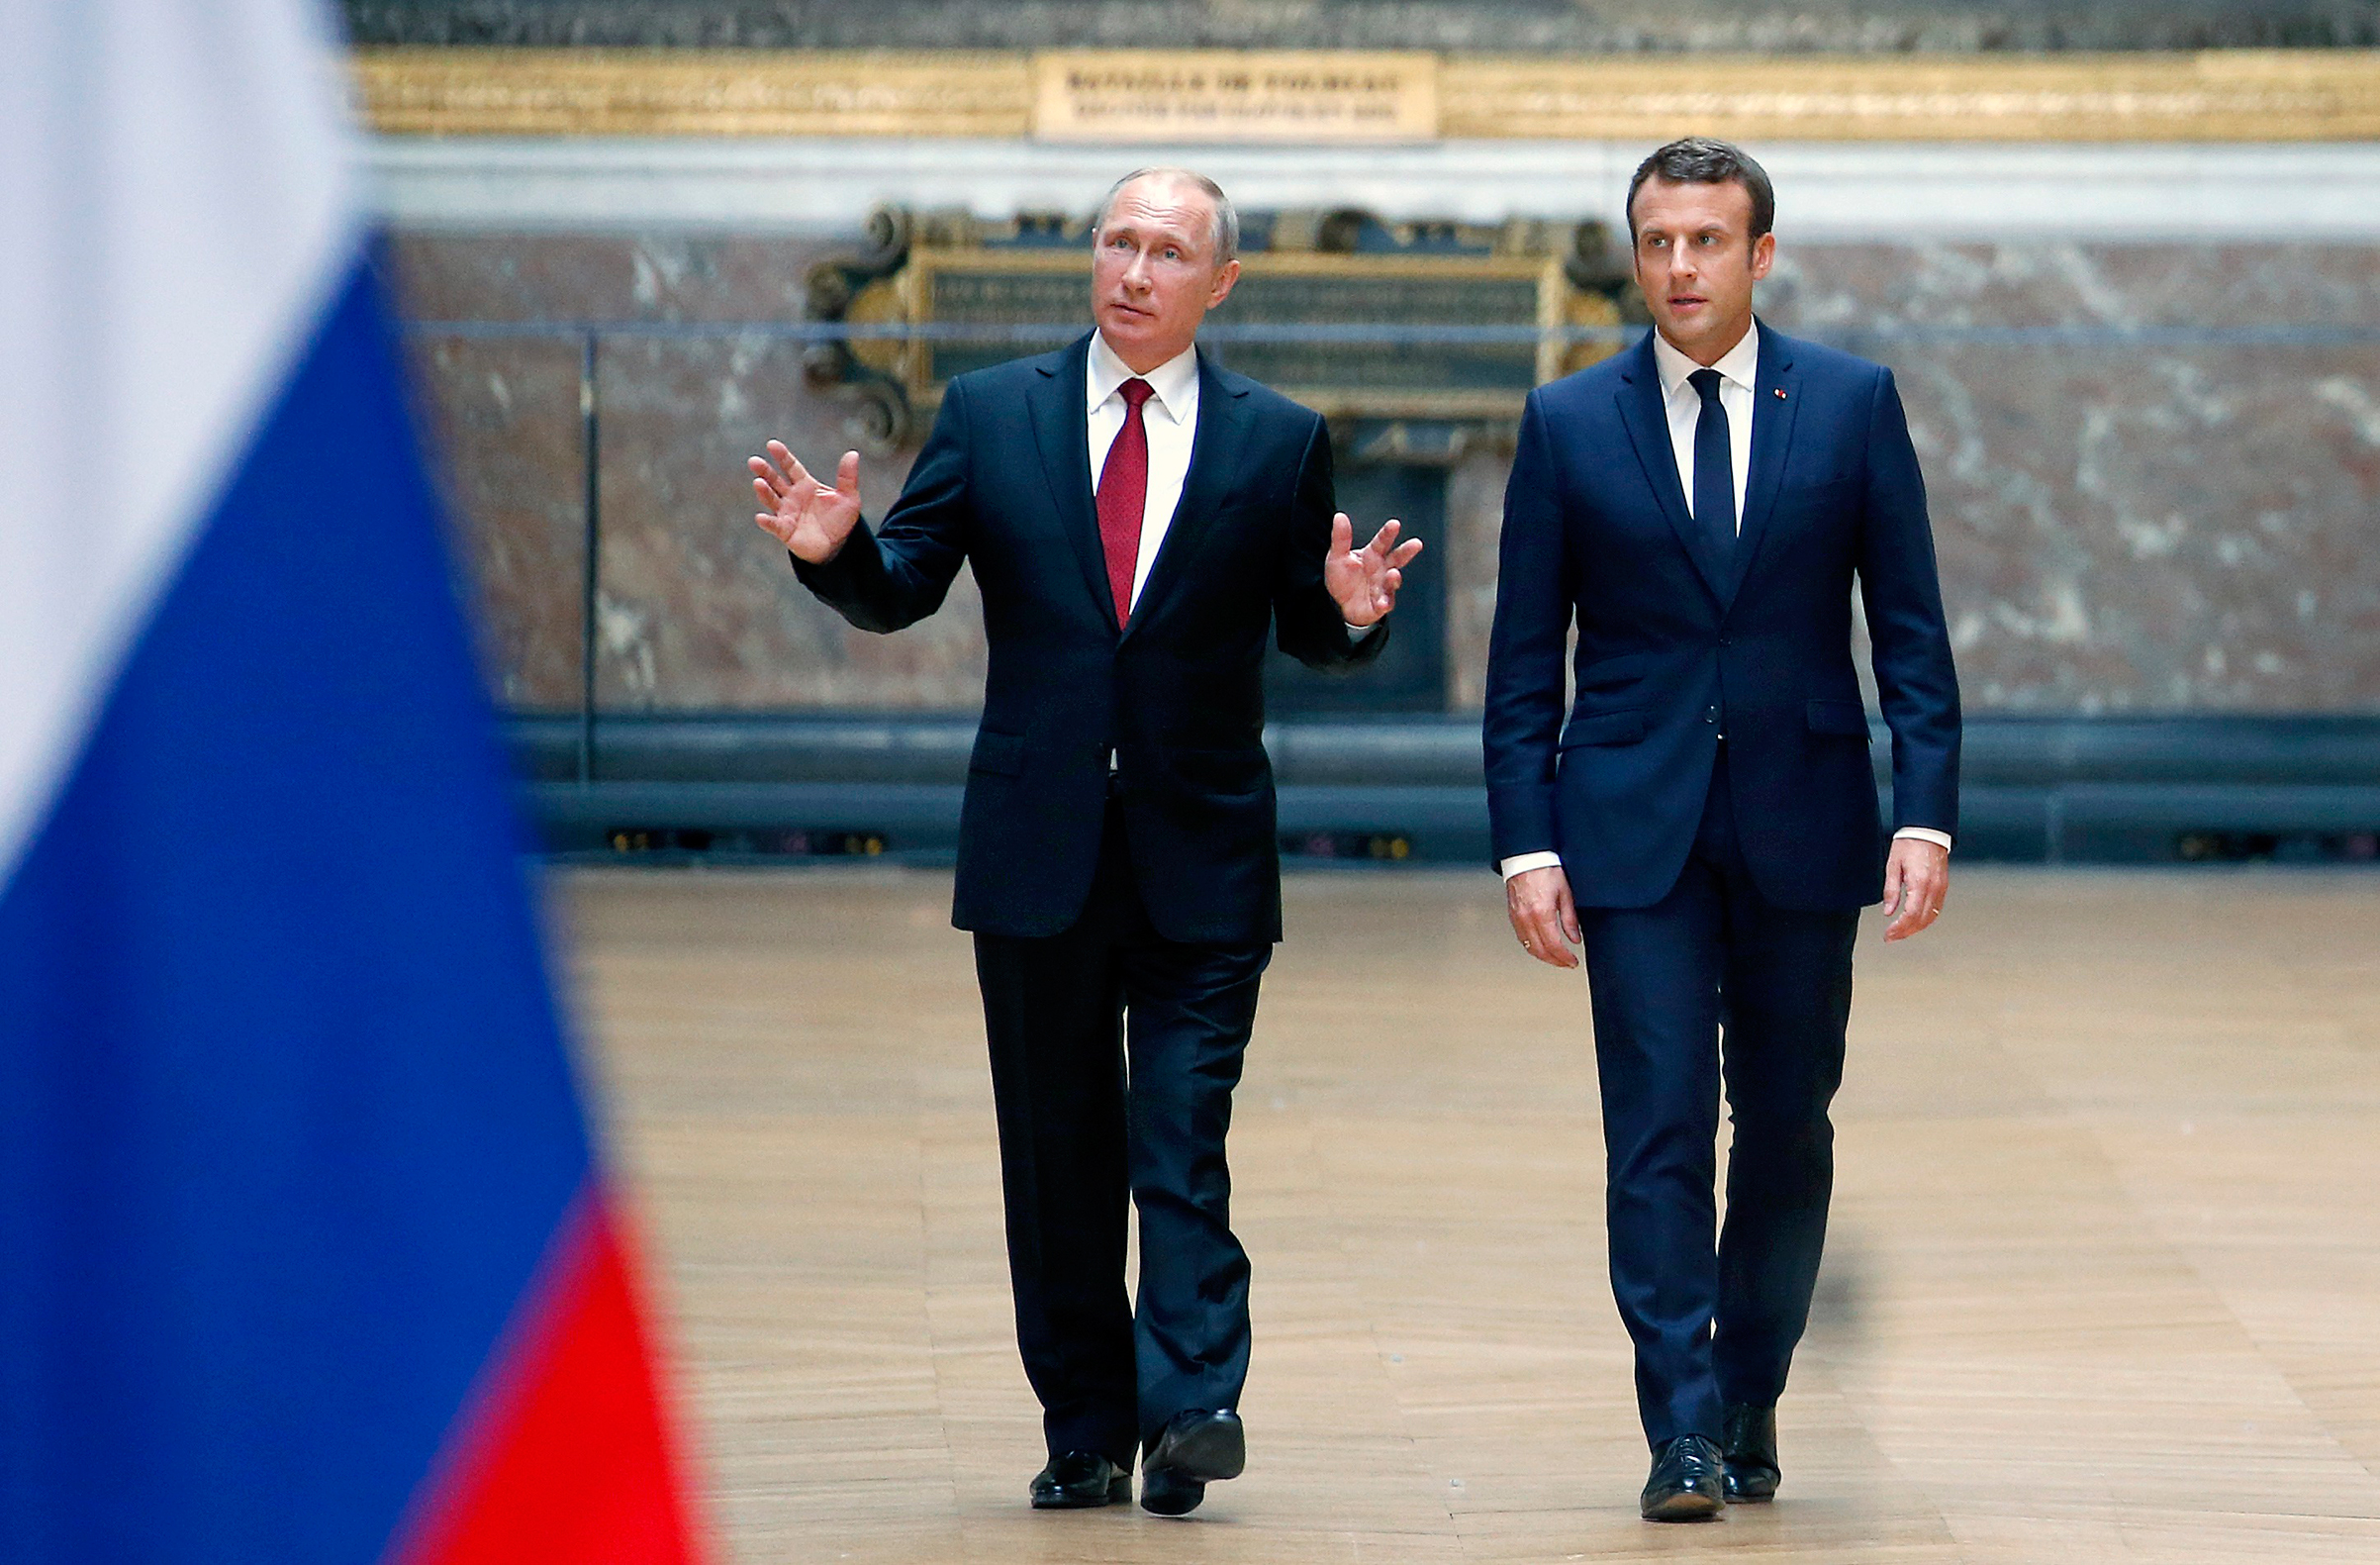 Macron (right) raised concerns with Putin about gay rights in Chechnya